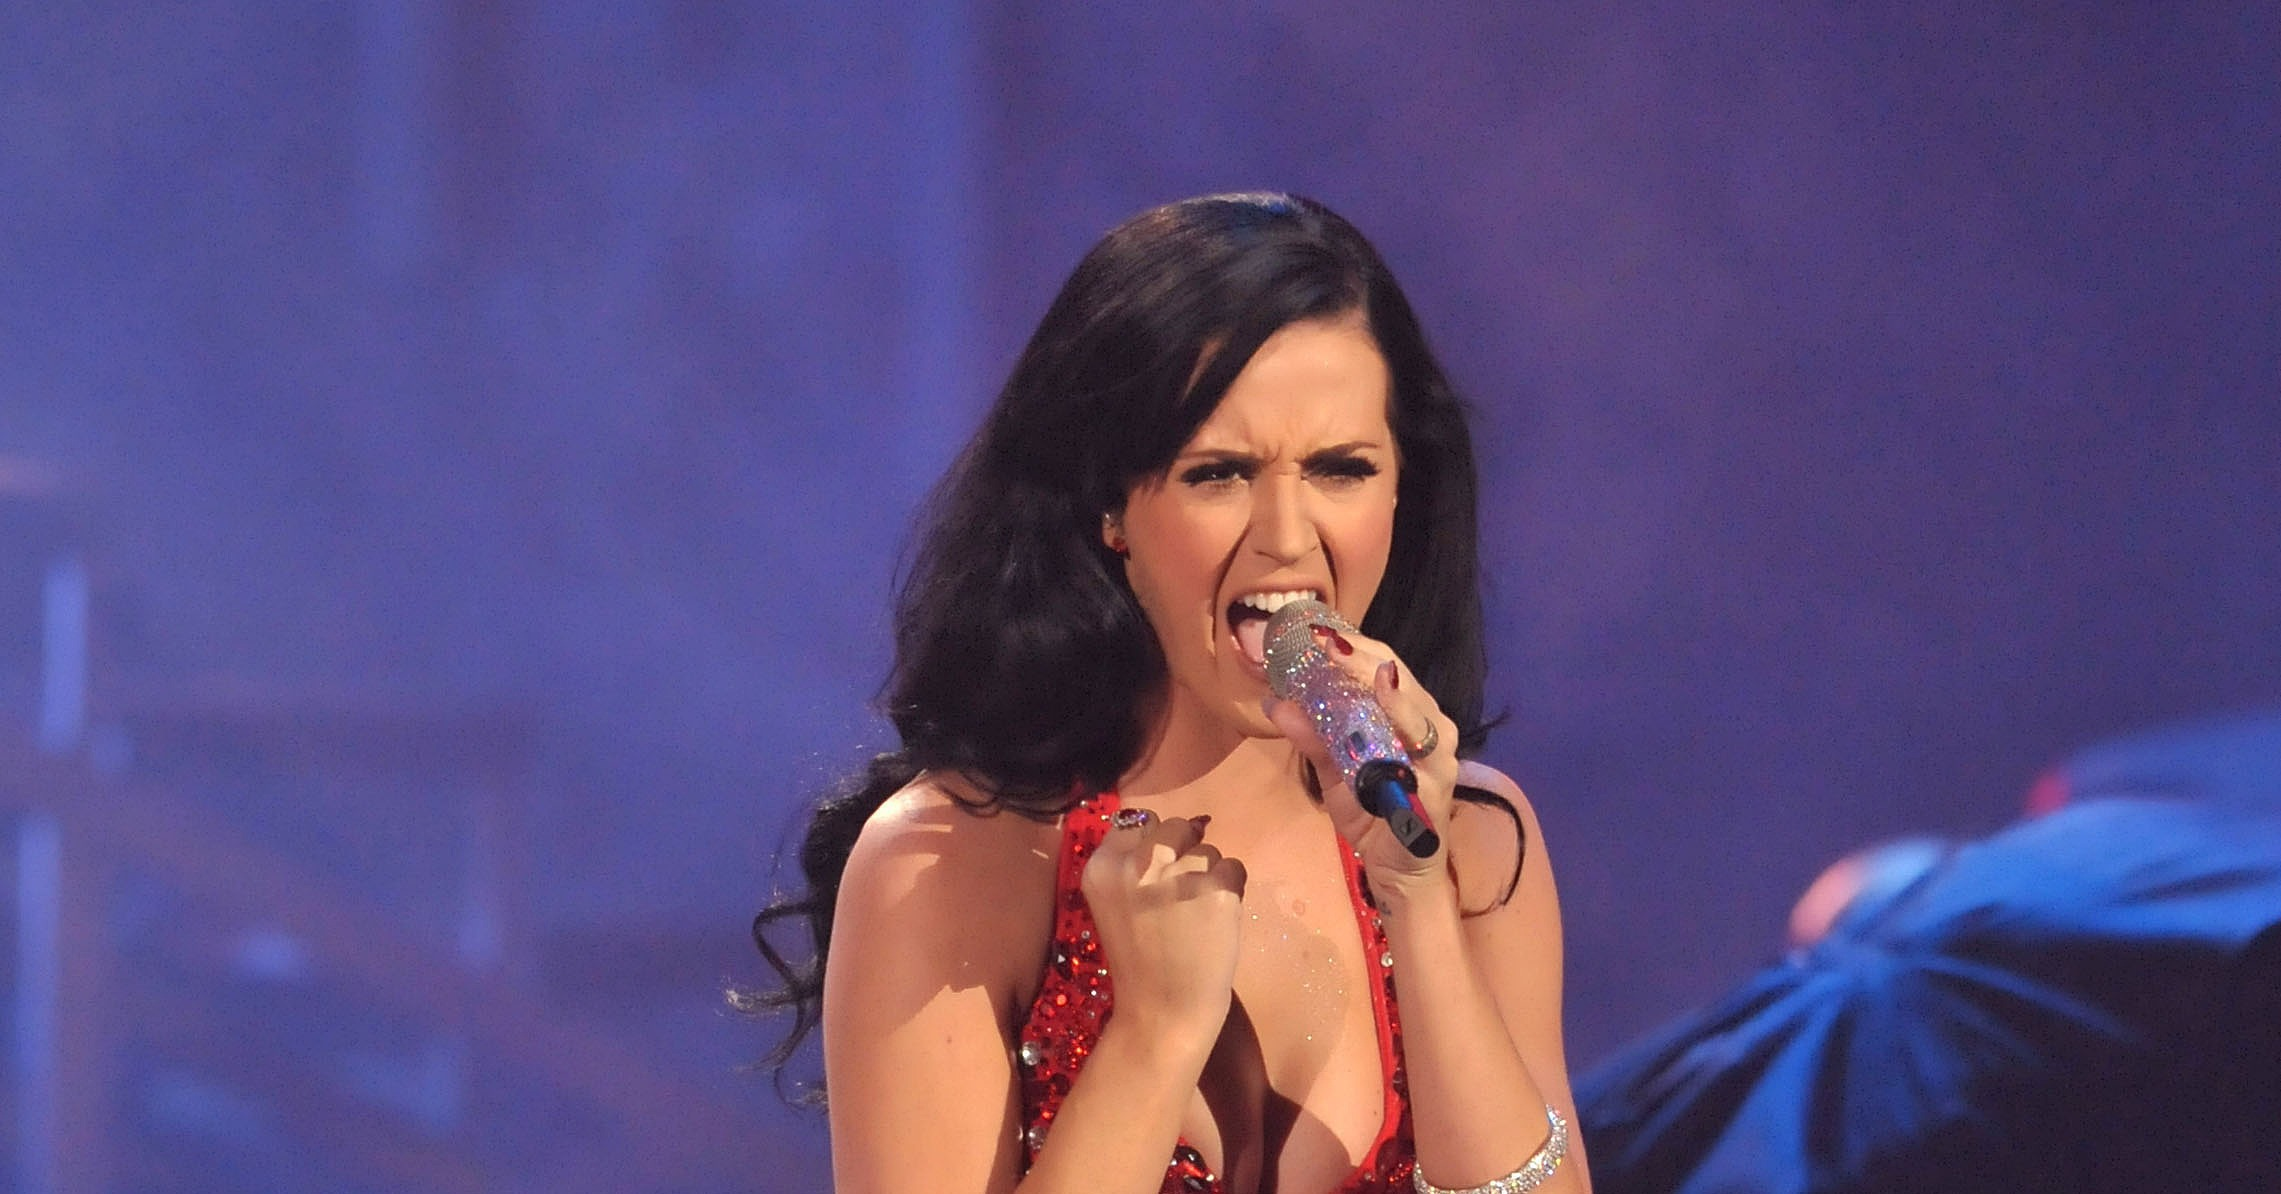 katy perry performed her hit song firework in 2010 a